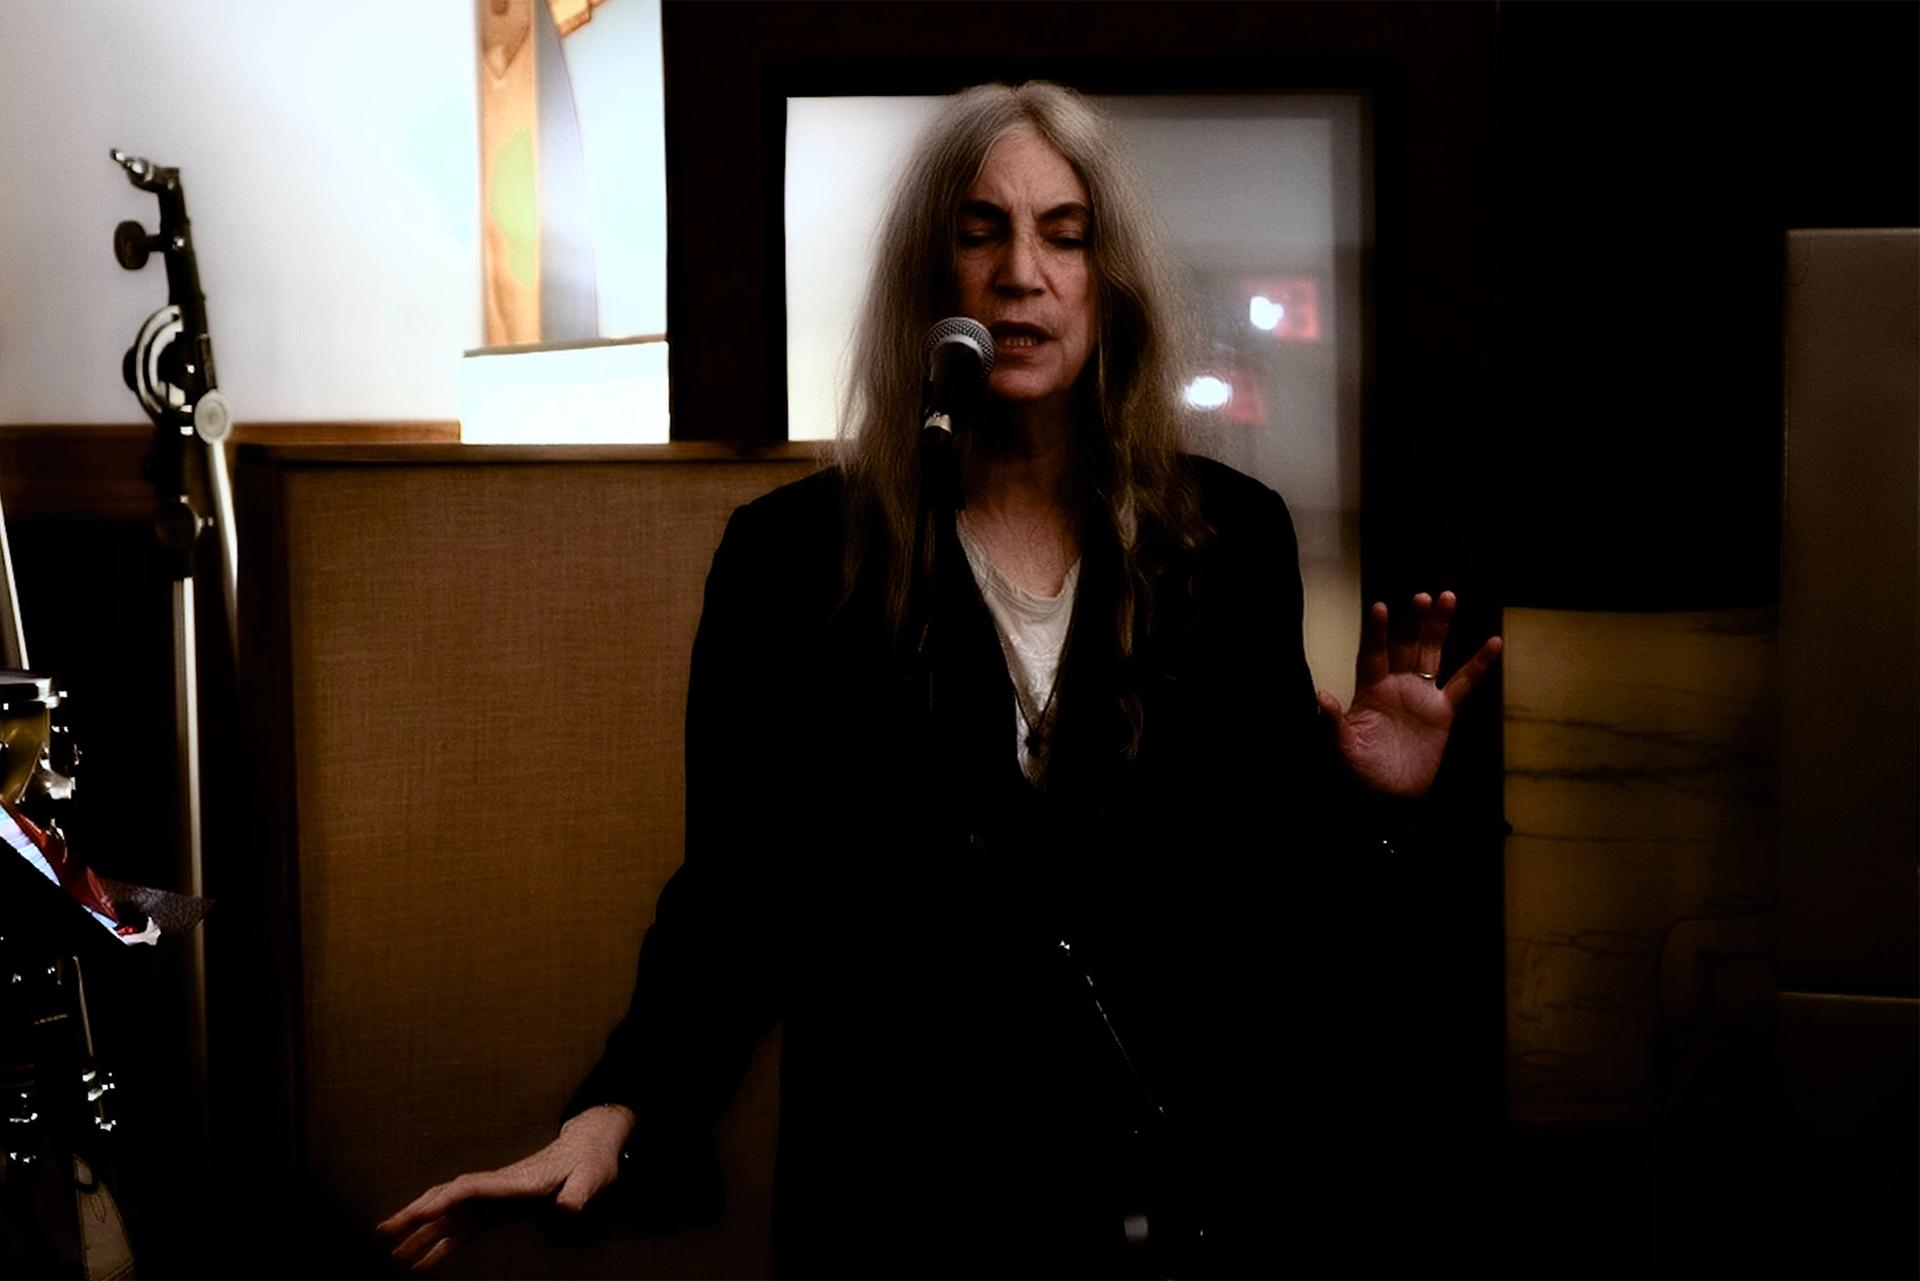 Patti Smith performing on New Years Eve © Circa, courtesy of the artist